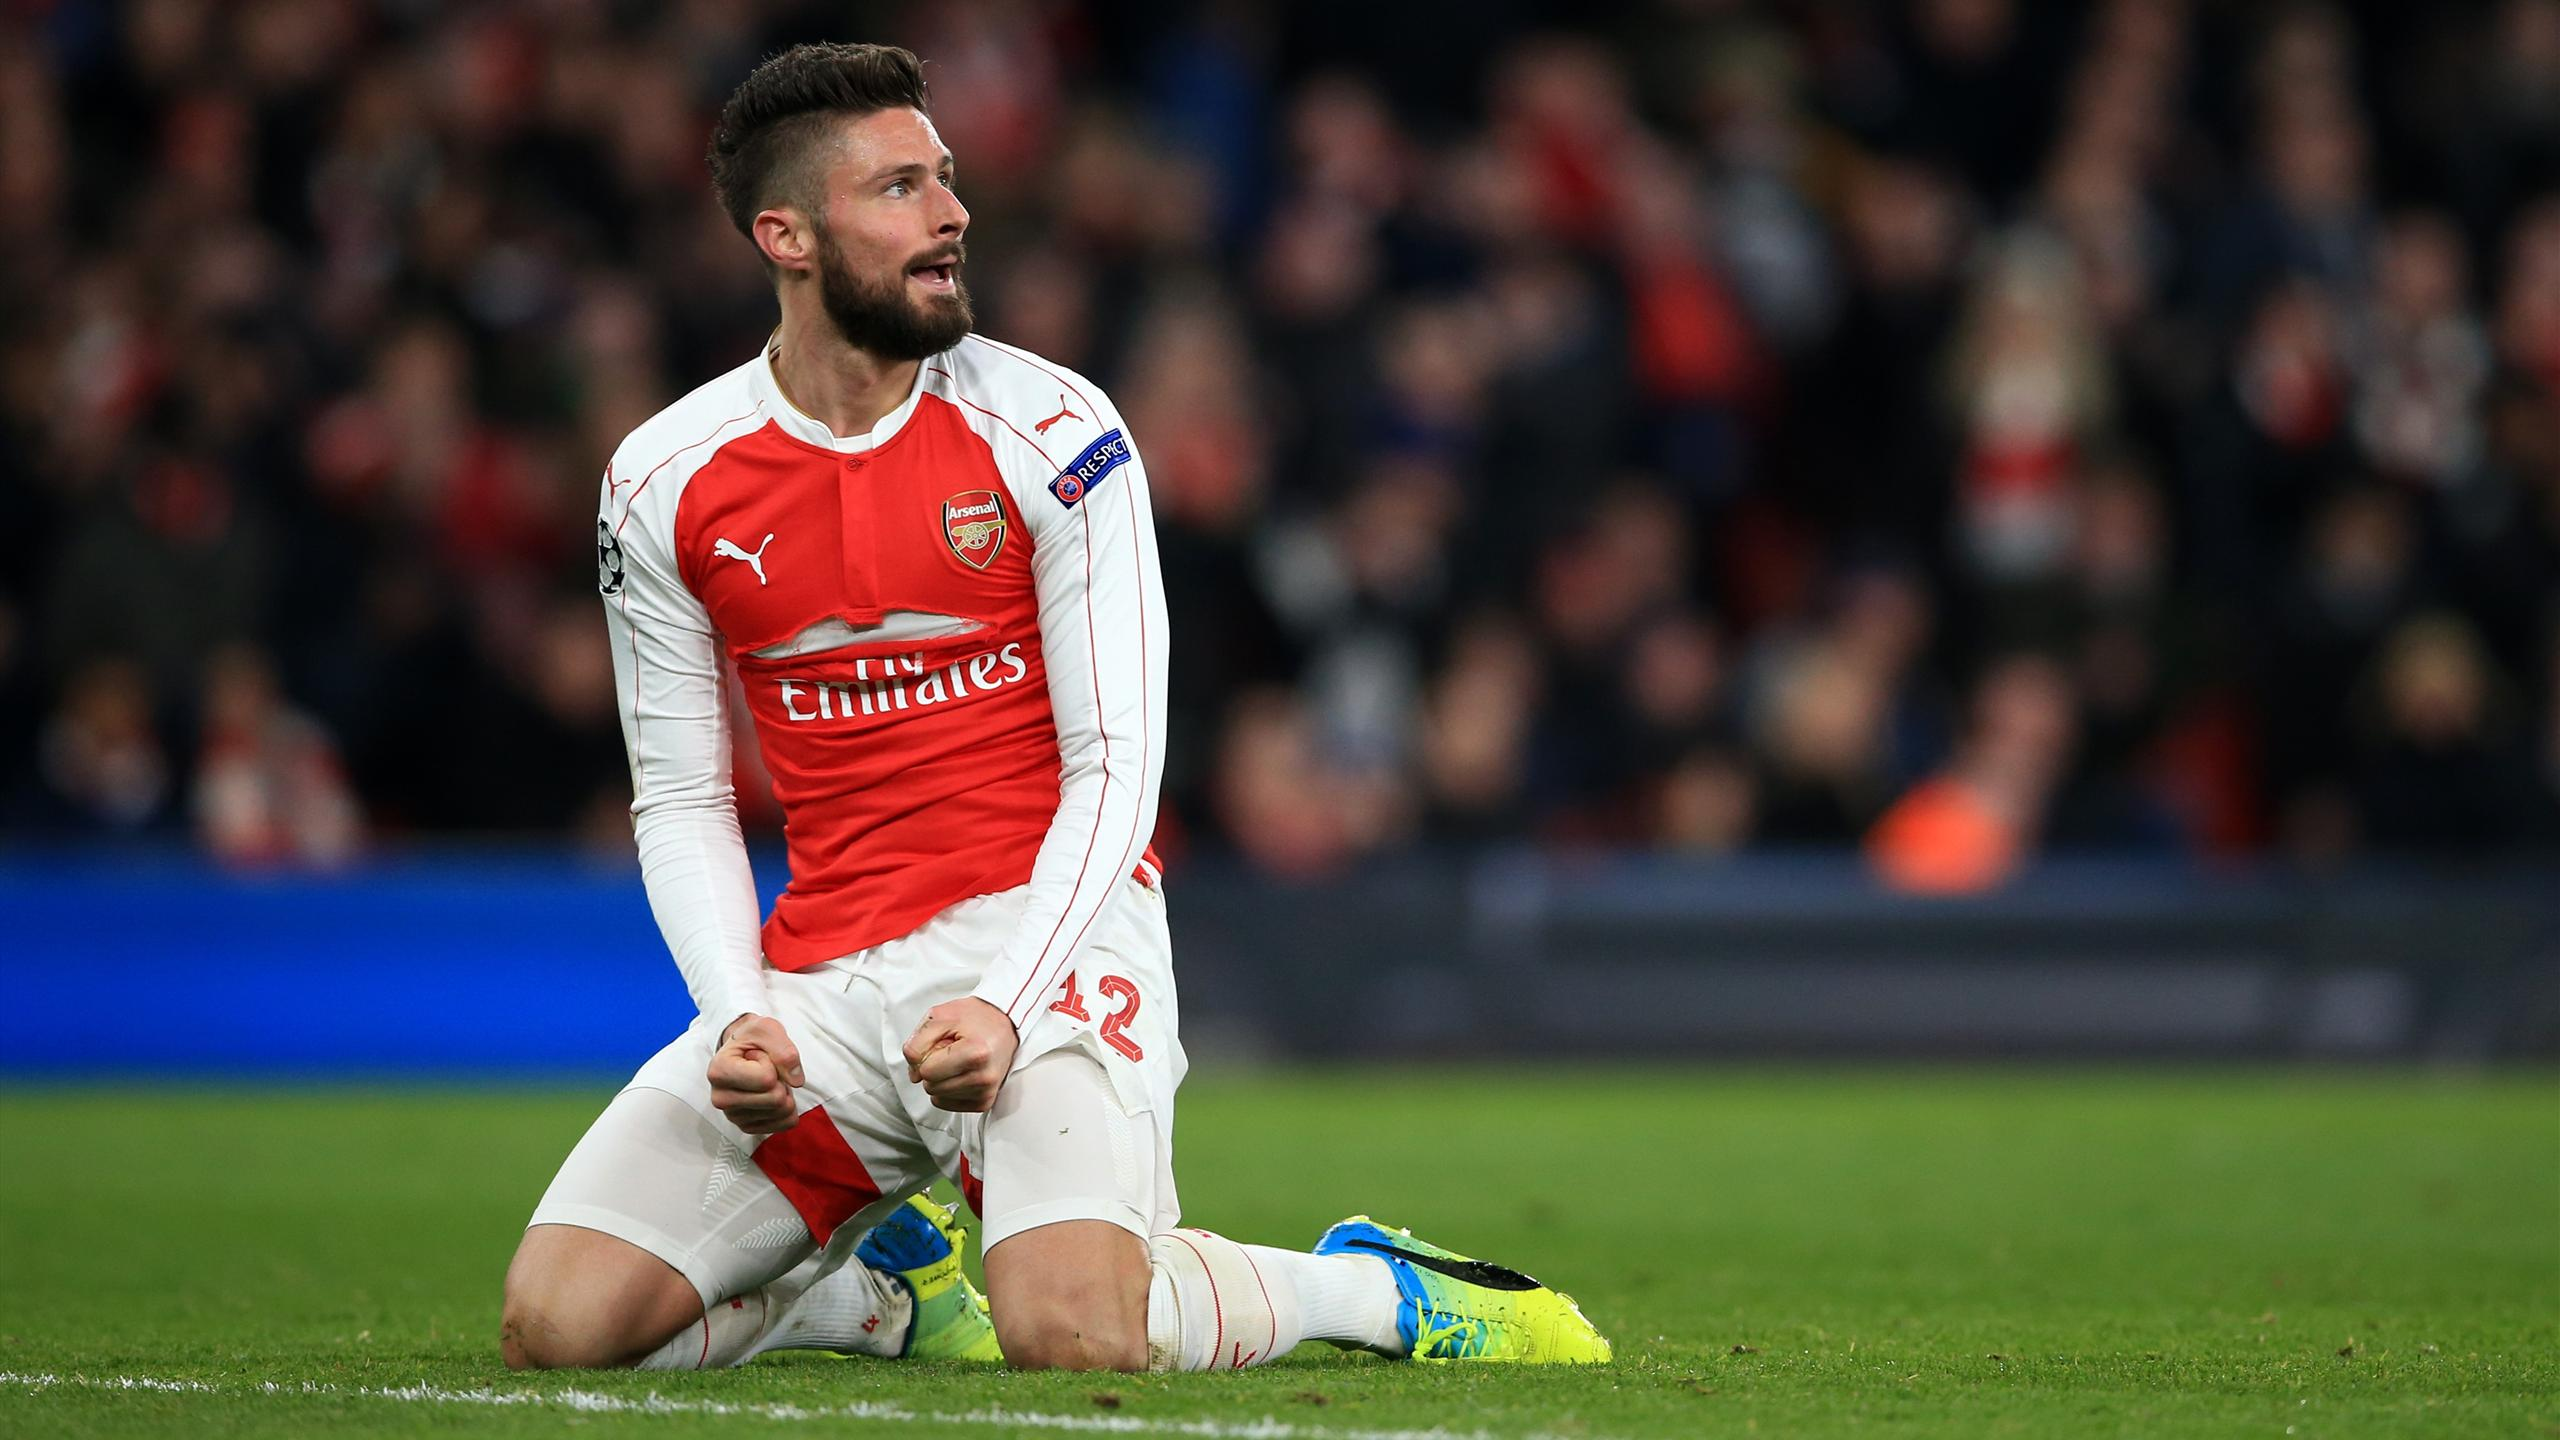 Arsenal's Olivier Giroud rues a missed chance